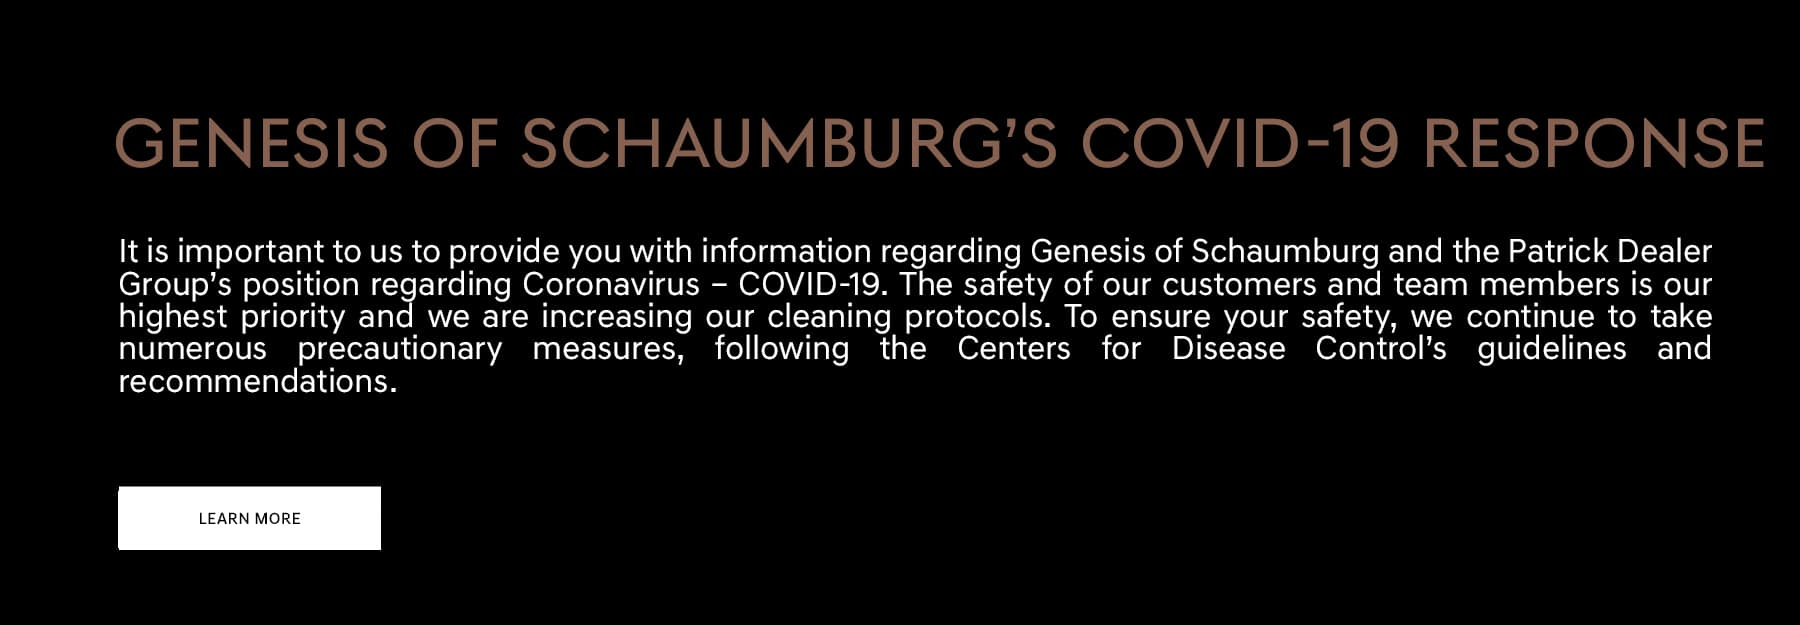 Genesis of Schaumburg's COVID-19 Response. It is important to us to provide you with information regarding Genesis of Schaumburg and the Patrick Dealer Group's position regarding Coronavirus – COVID-19. The safety of our customers and team members is our highest priority and we are increasing our cleaning protocols. To ensure your safety, we continue to take numerous precautionary measures, following the Centers for Disease Control's guidelines and recommendations.